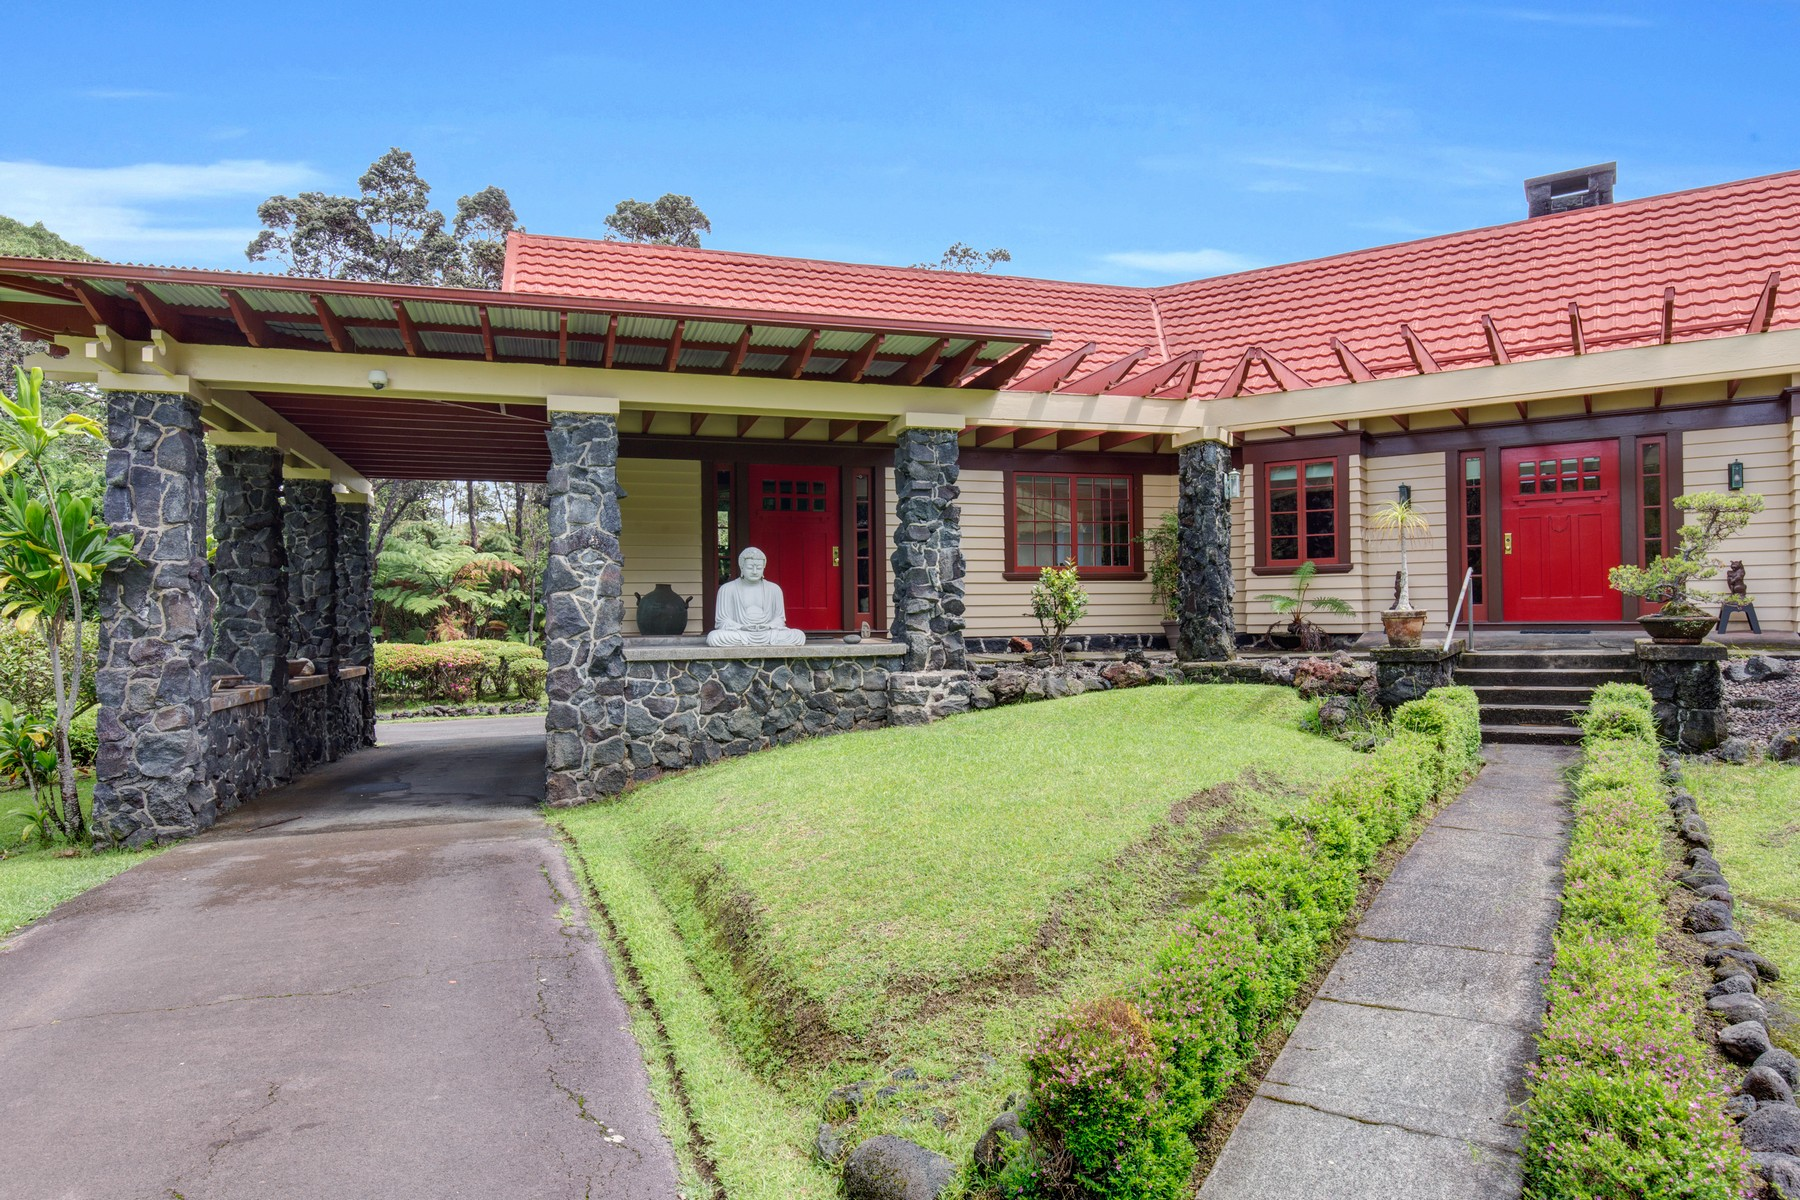 Single Family Home for Sale at Bide-A-Wee 11-4039 Old Volcano Rd Volcano, Hawaii, 96785 United States